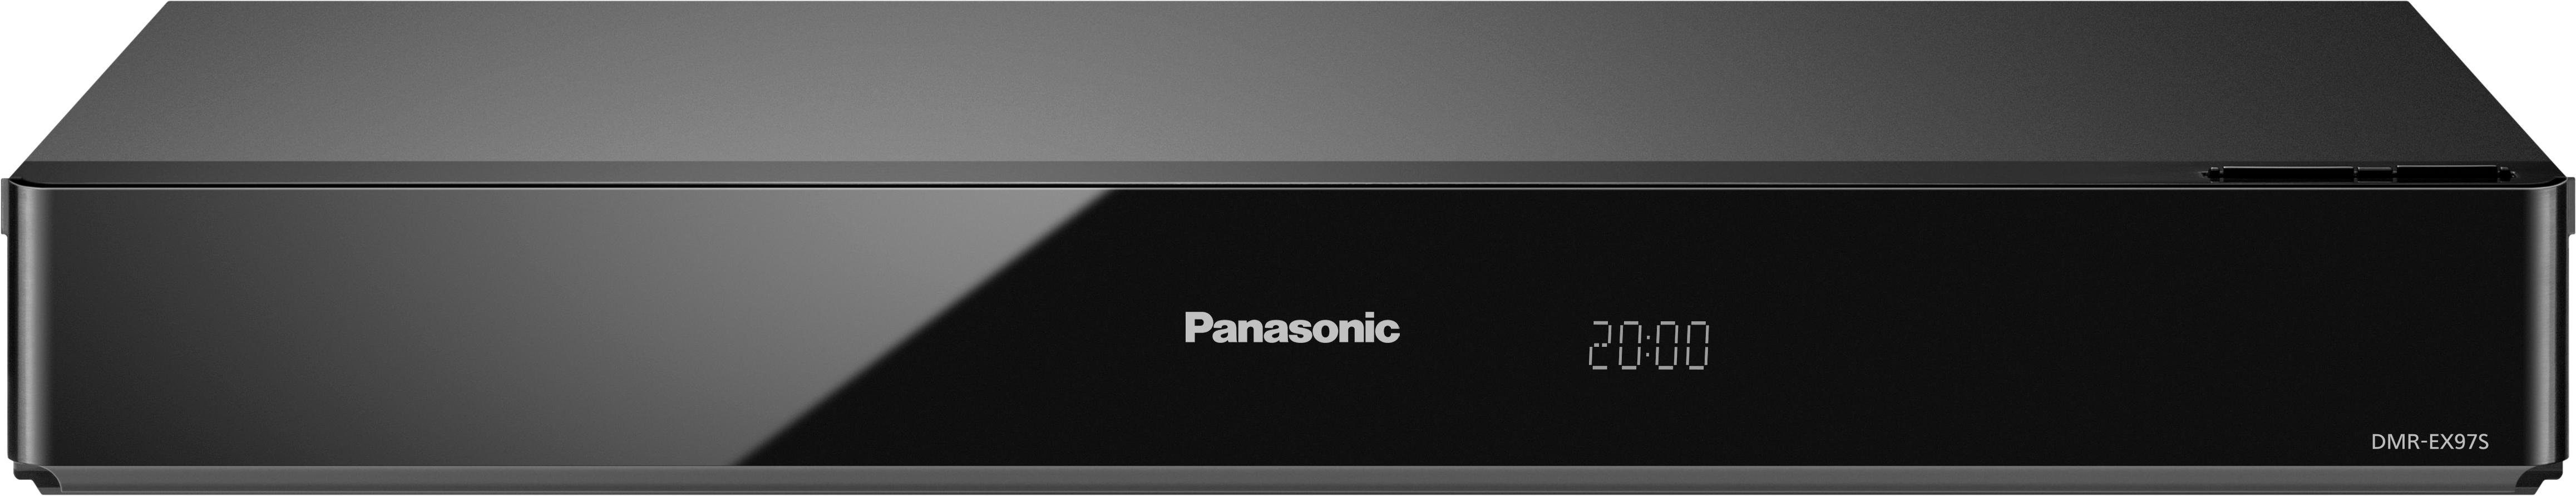 Panasonic DMR-EX97CESK DVD Recorder, 3D-fähig, 1080p (Full HD), 500 GB